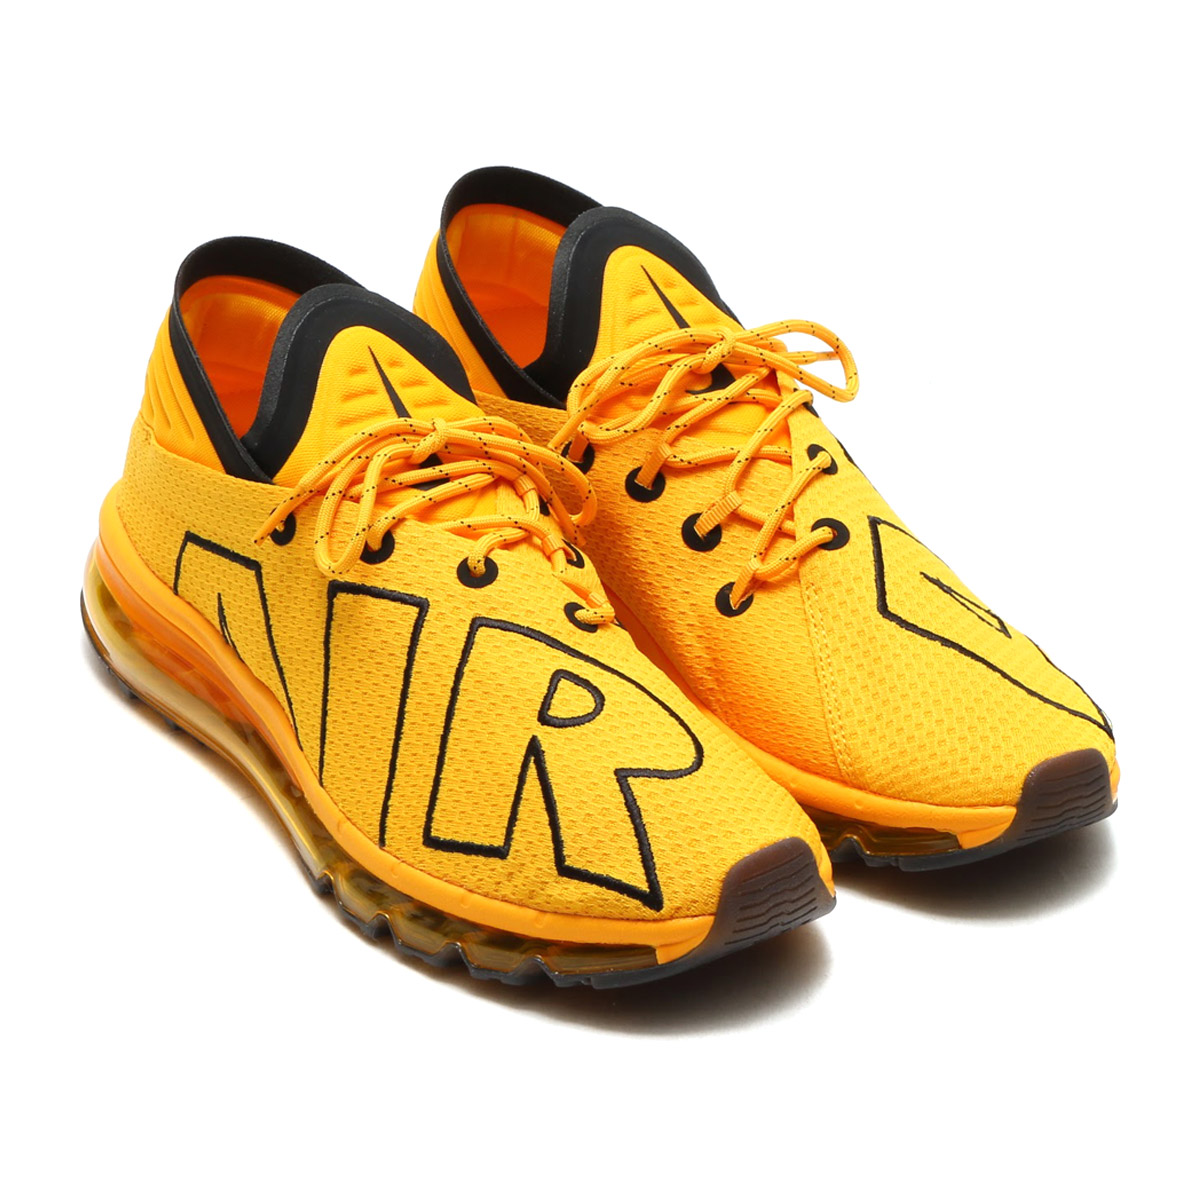 NIKE AIR MAX FLAIR (Kie Ney AMAX flare) (UNIVERSITY GOLD/BLACK) 17FA-S